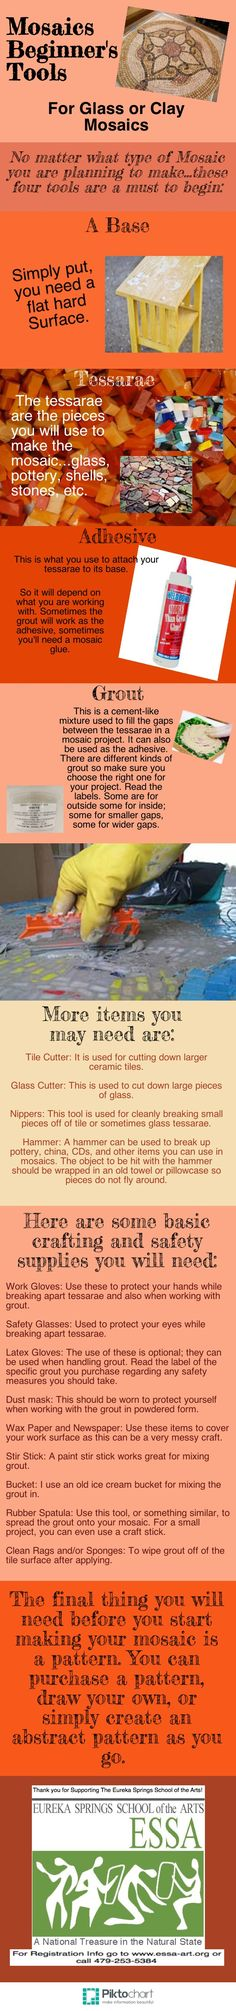 Basic Tools for the Mosaic Artist  http://www.pinterest.com/shotsigirl/mosaic-tutorials/